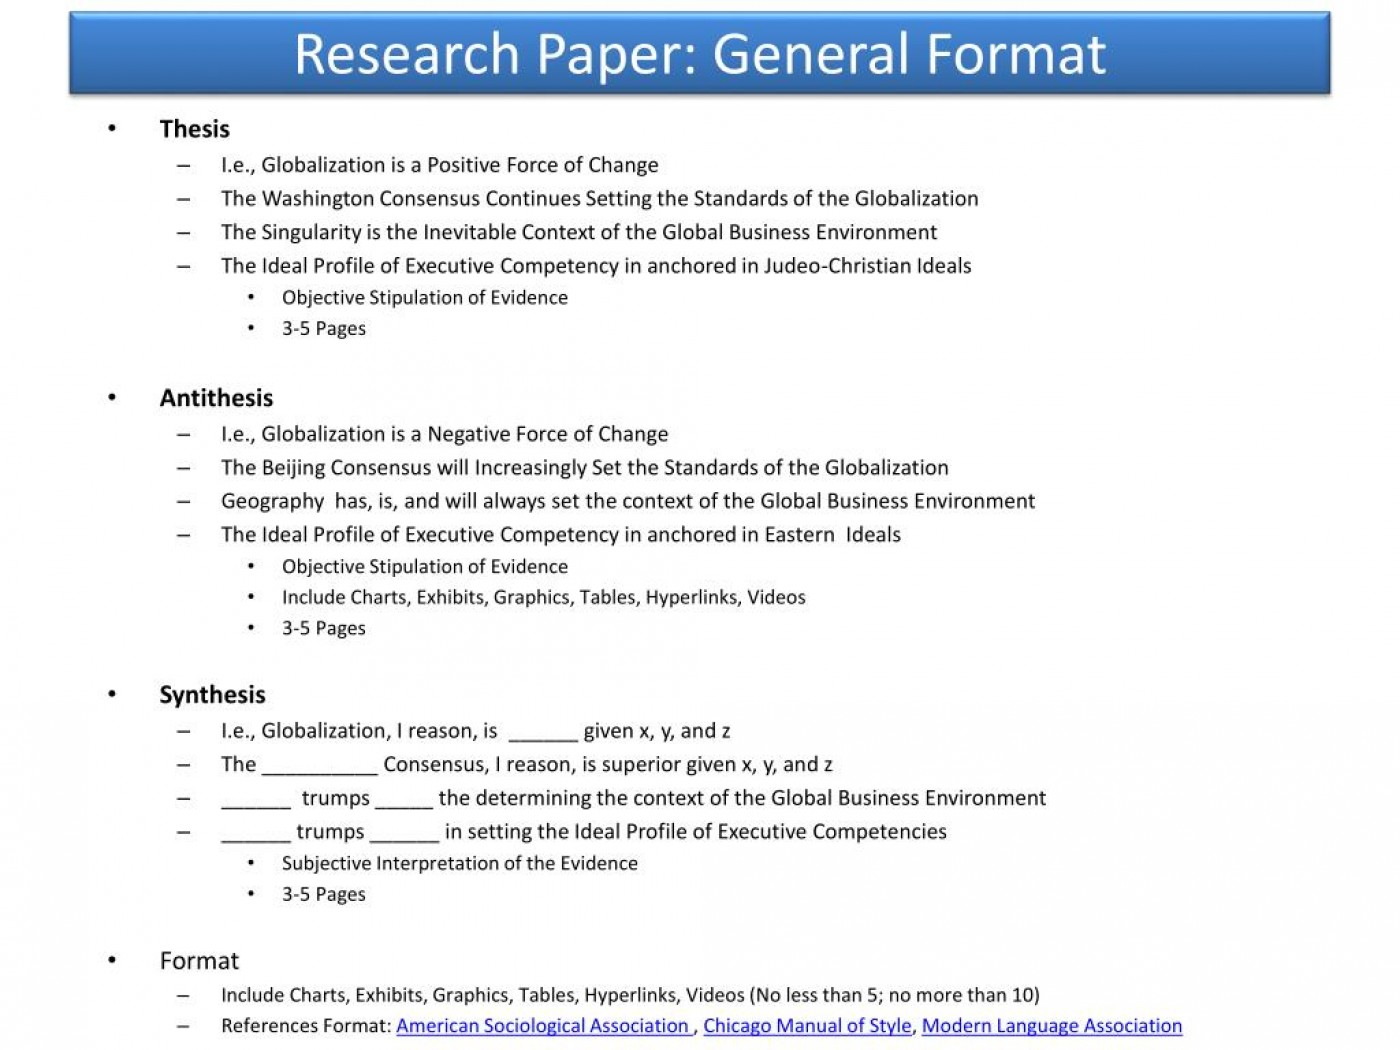 009 Research Paper Powerpoint Presentation Format For General Unique Sample Ppt Templates 1400